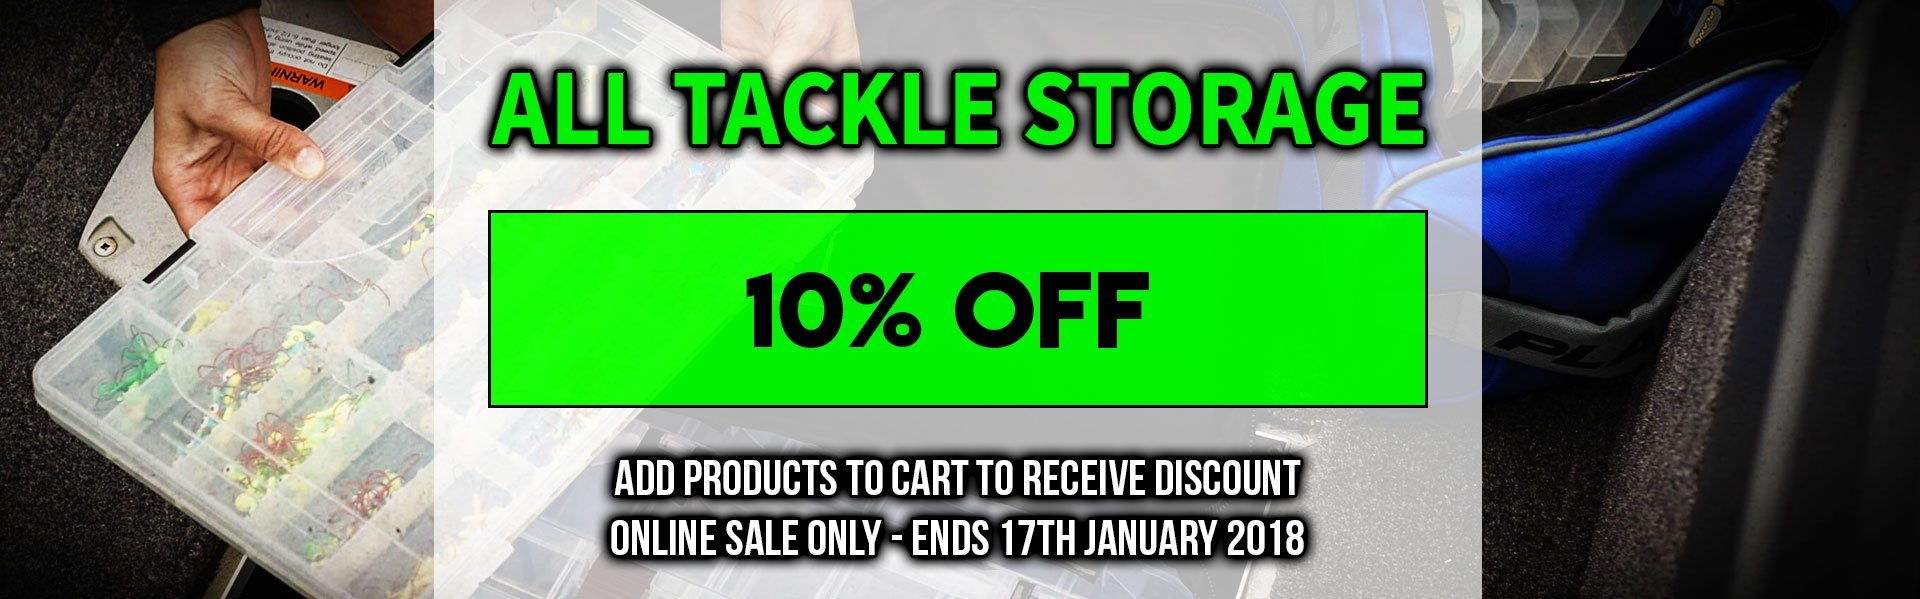 10% off Tackle Storage